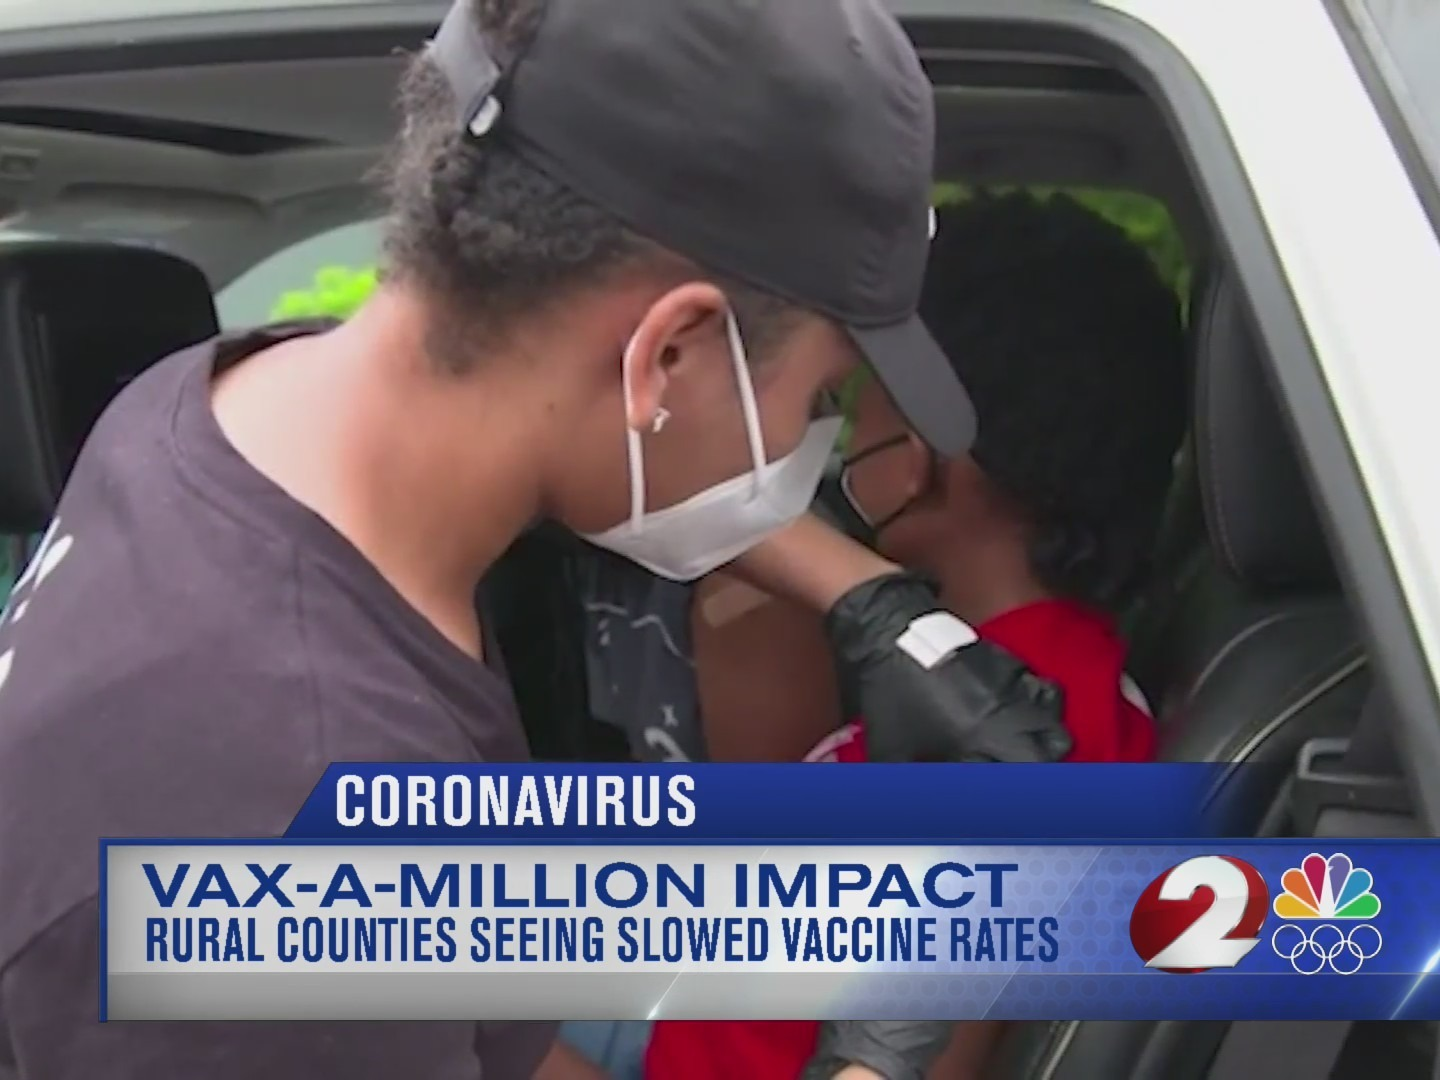 Health official administering a vaccine to a child in a car